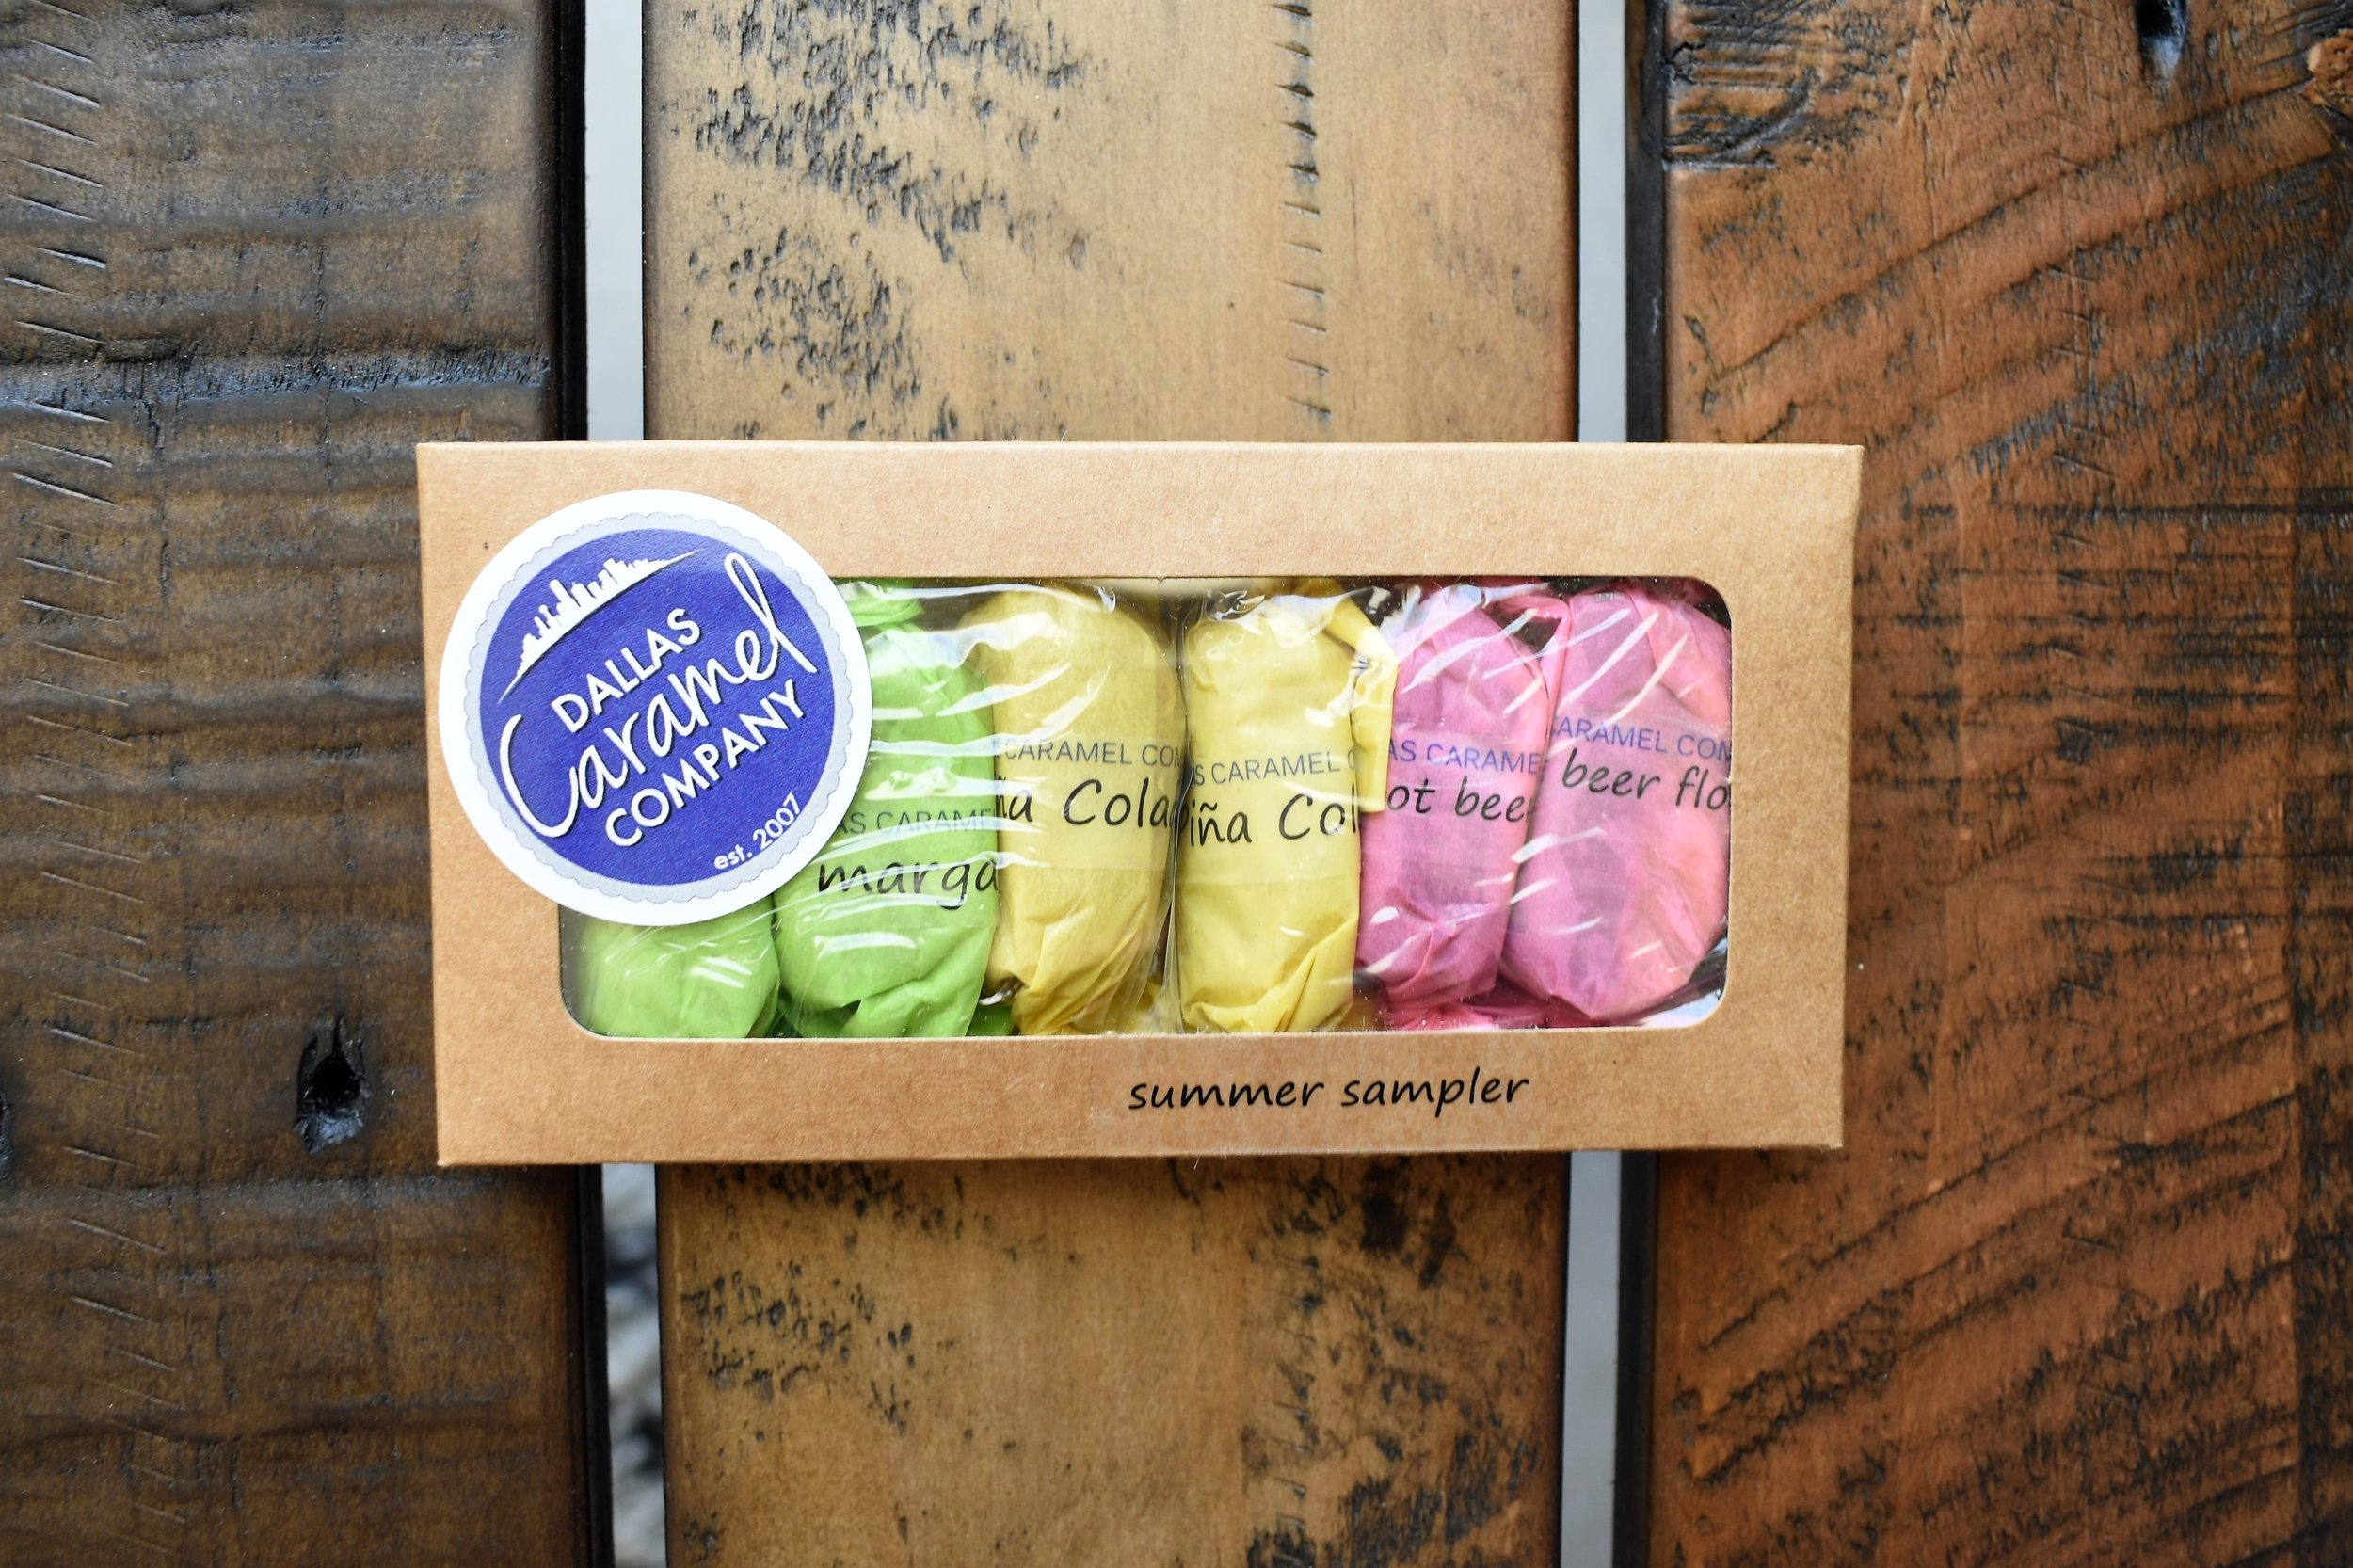 cool beans box review texas subscription gift box dallas caramel company sowing seeds blog